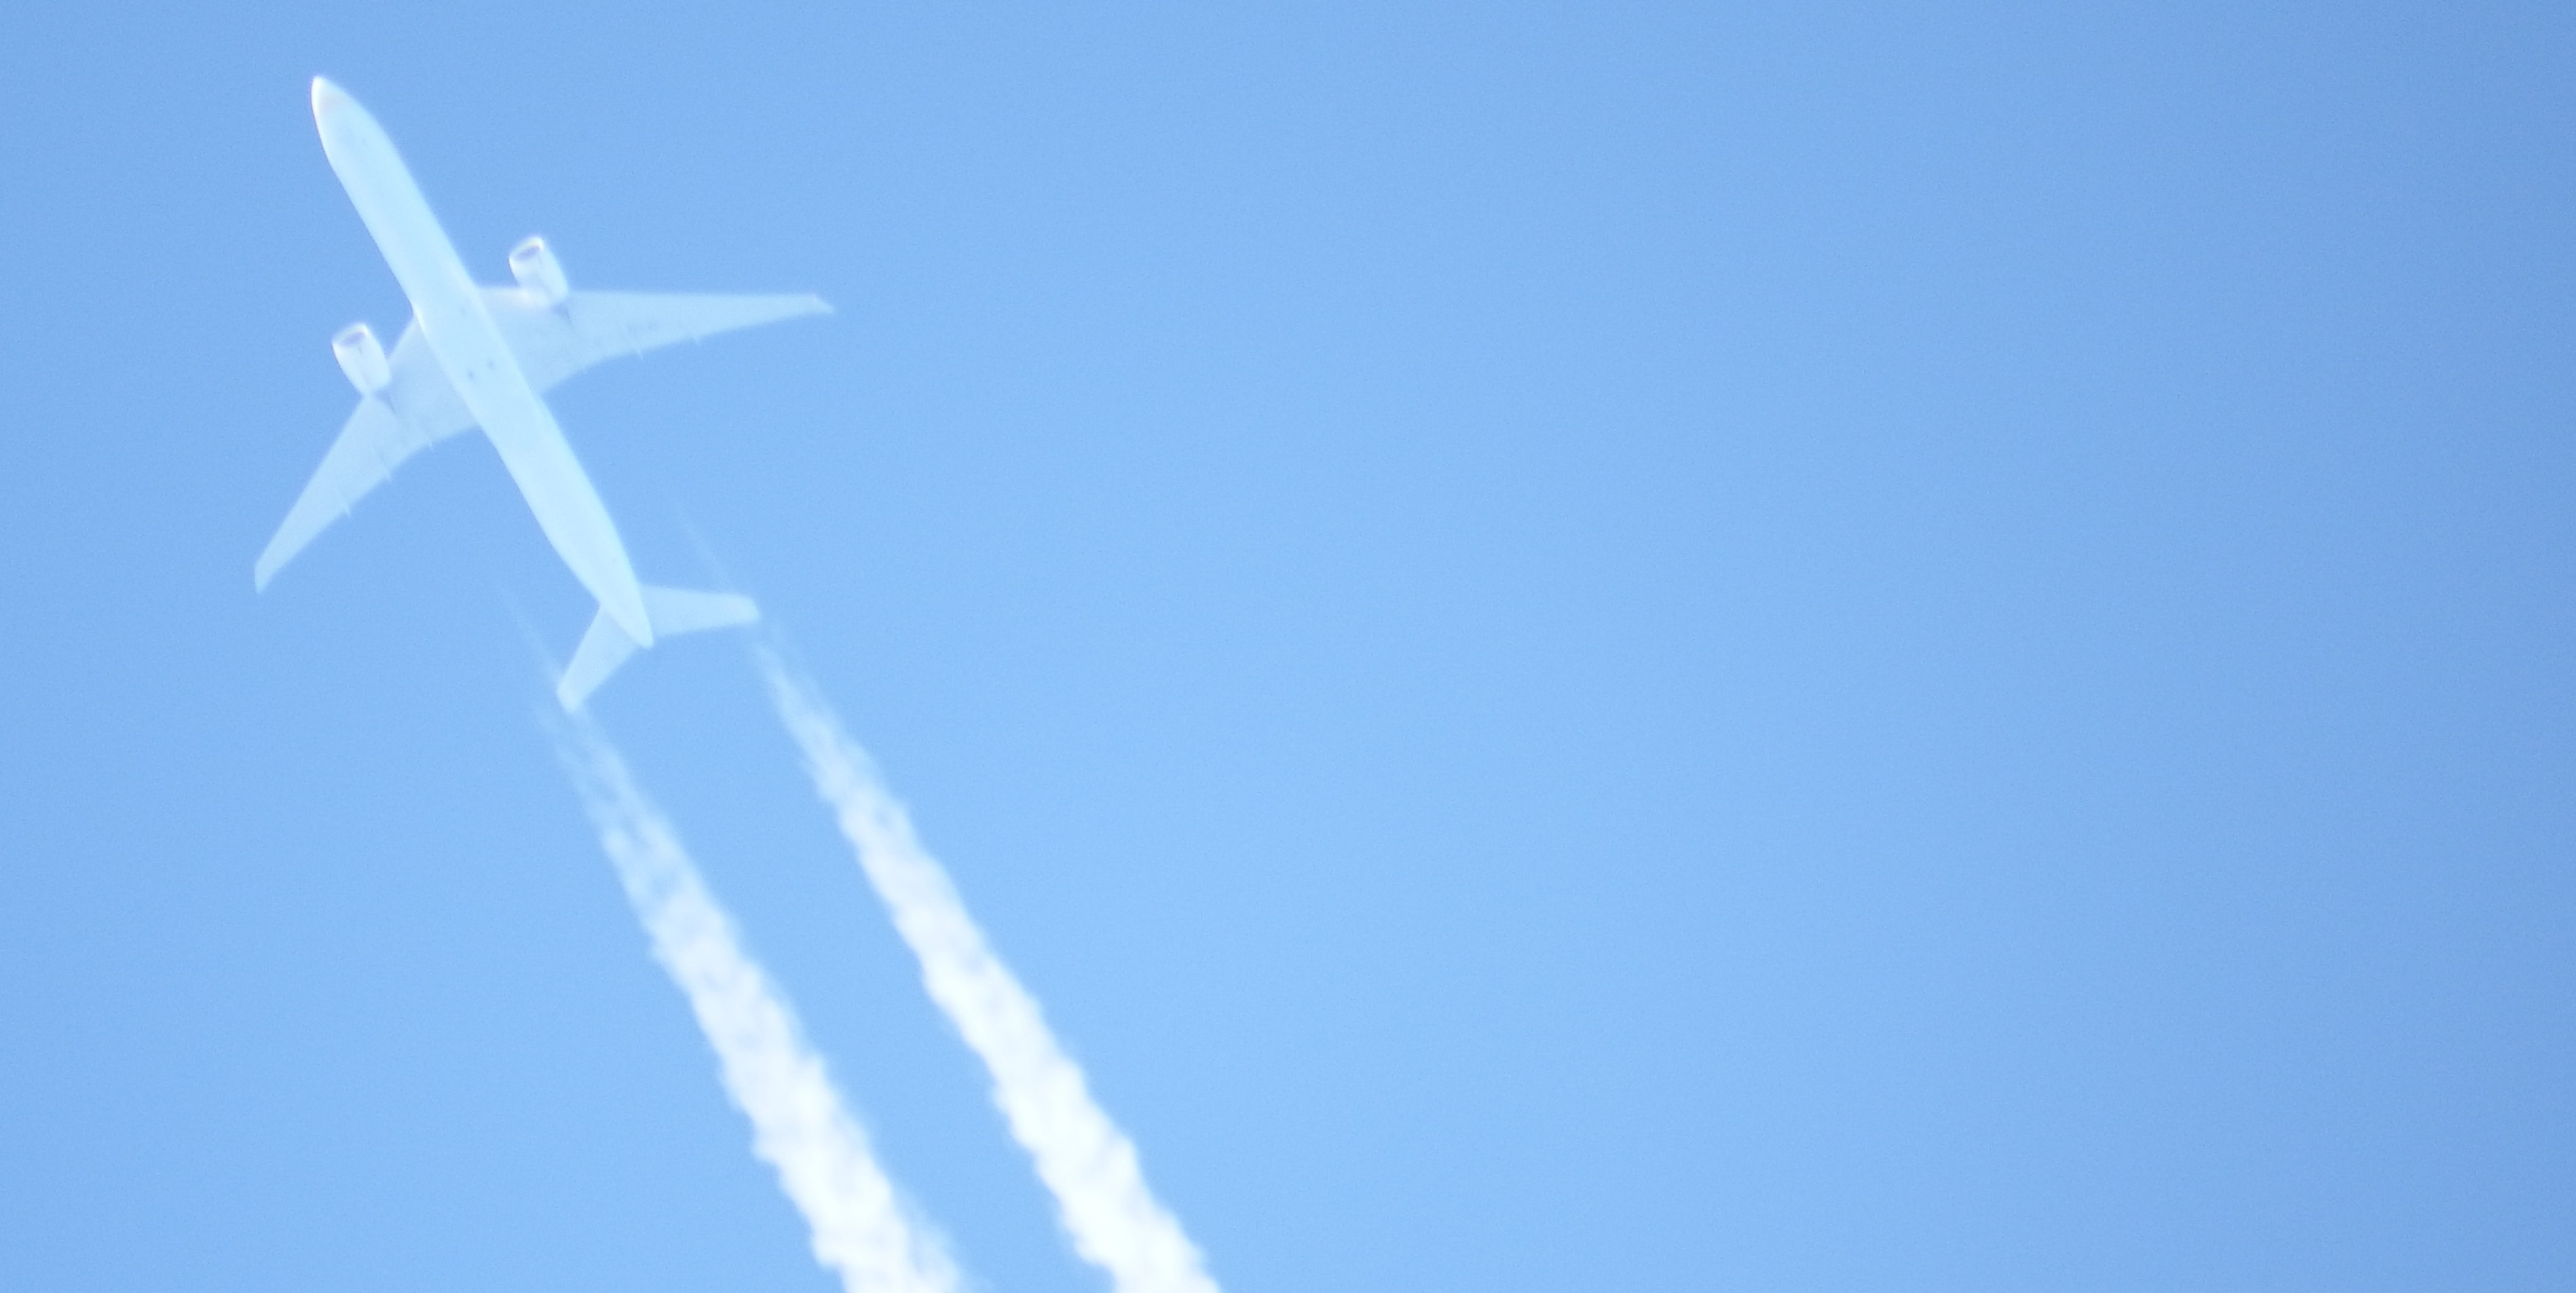 Debunking the Chemtrails Conspiracy Theory